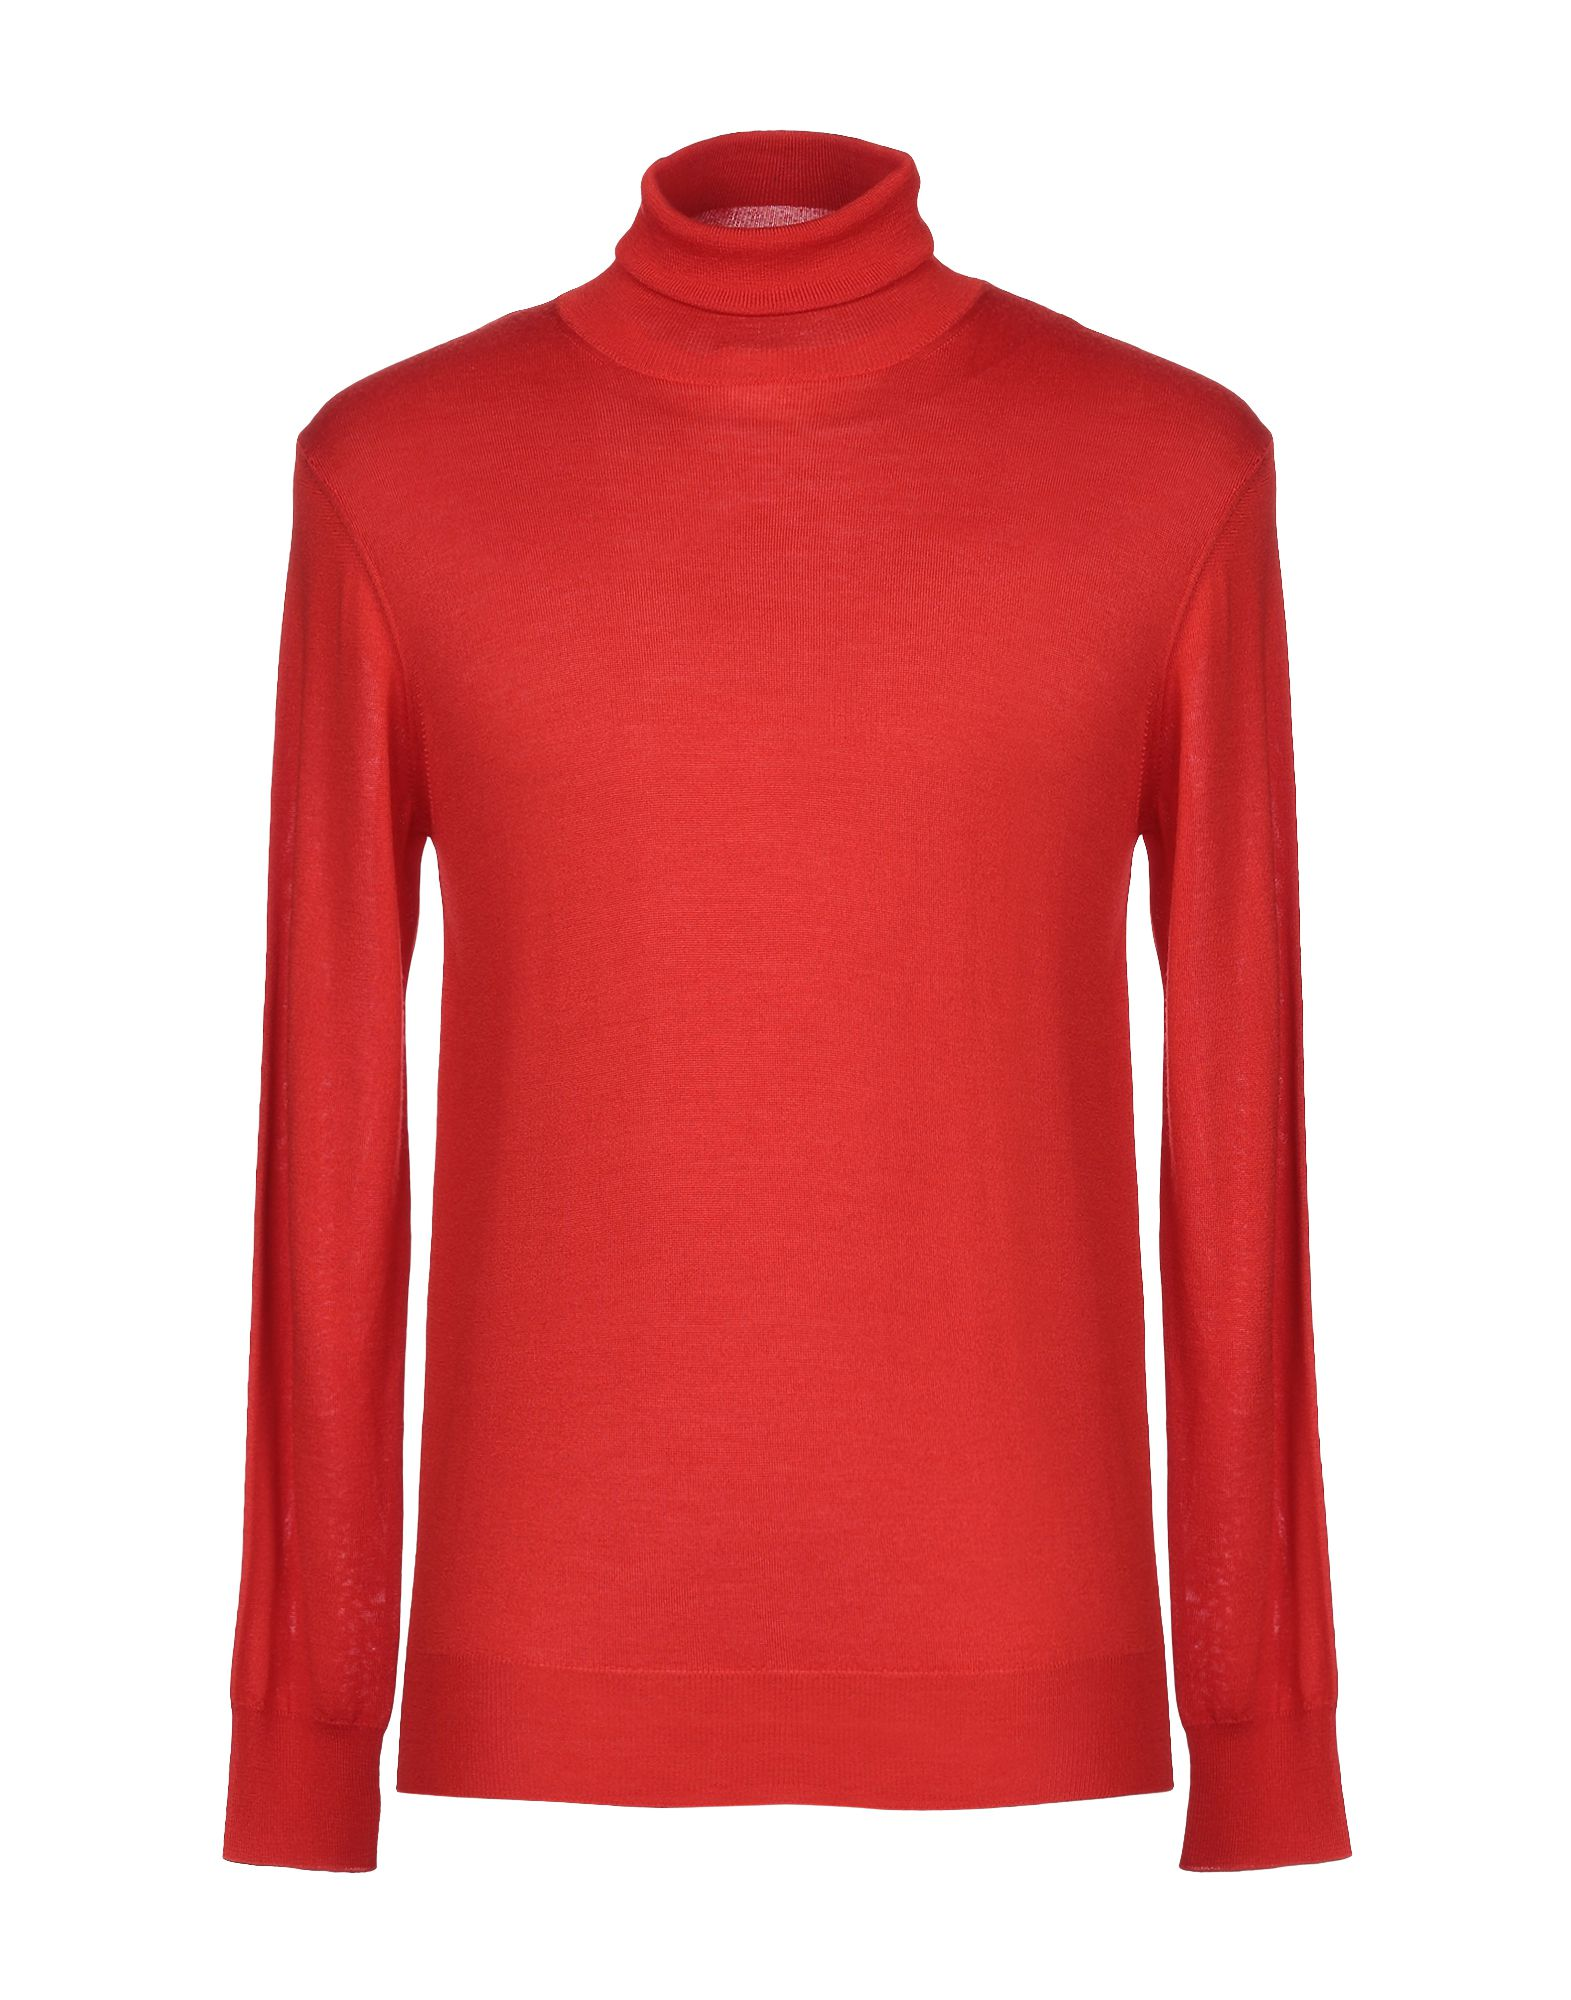 JIL SANDER Turtlenecks - Item 39954473